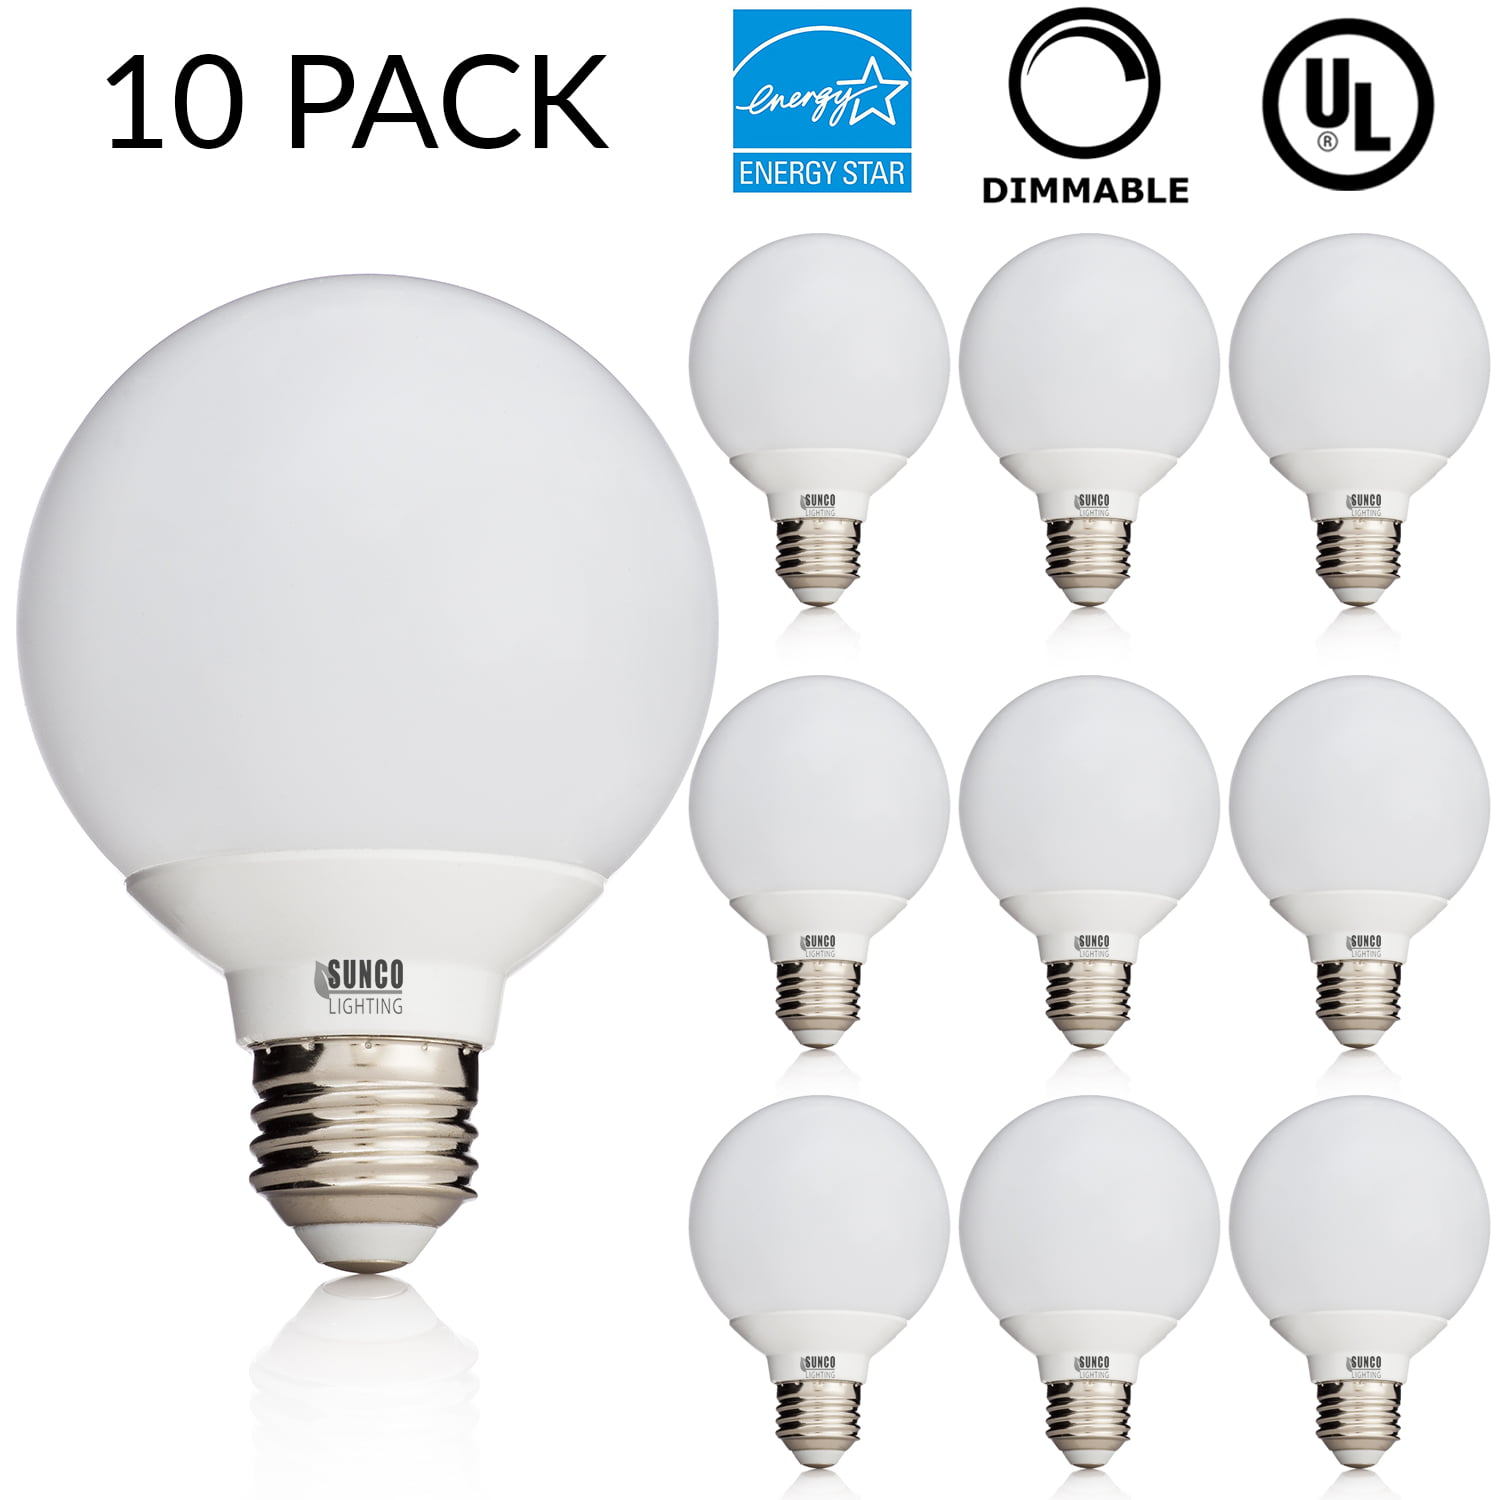 A19 LED E26 Base Bulb Frosted Glass Classic Style Dimmable 2700K Warm White 6 Pack 800 Lumen 8W 60W Replacement Energy Star /& UL Listed